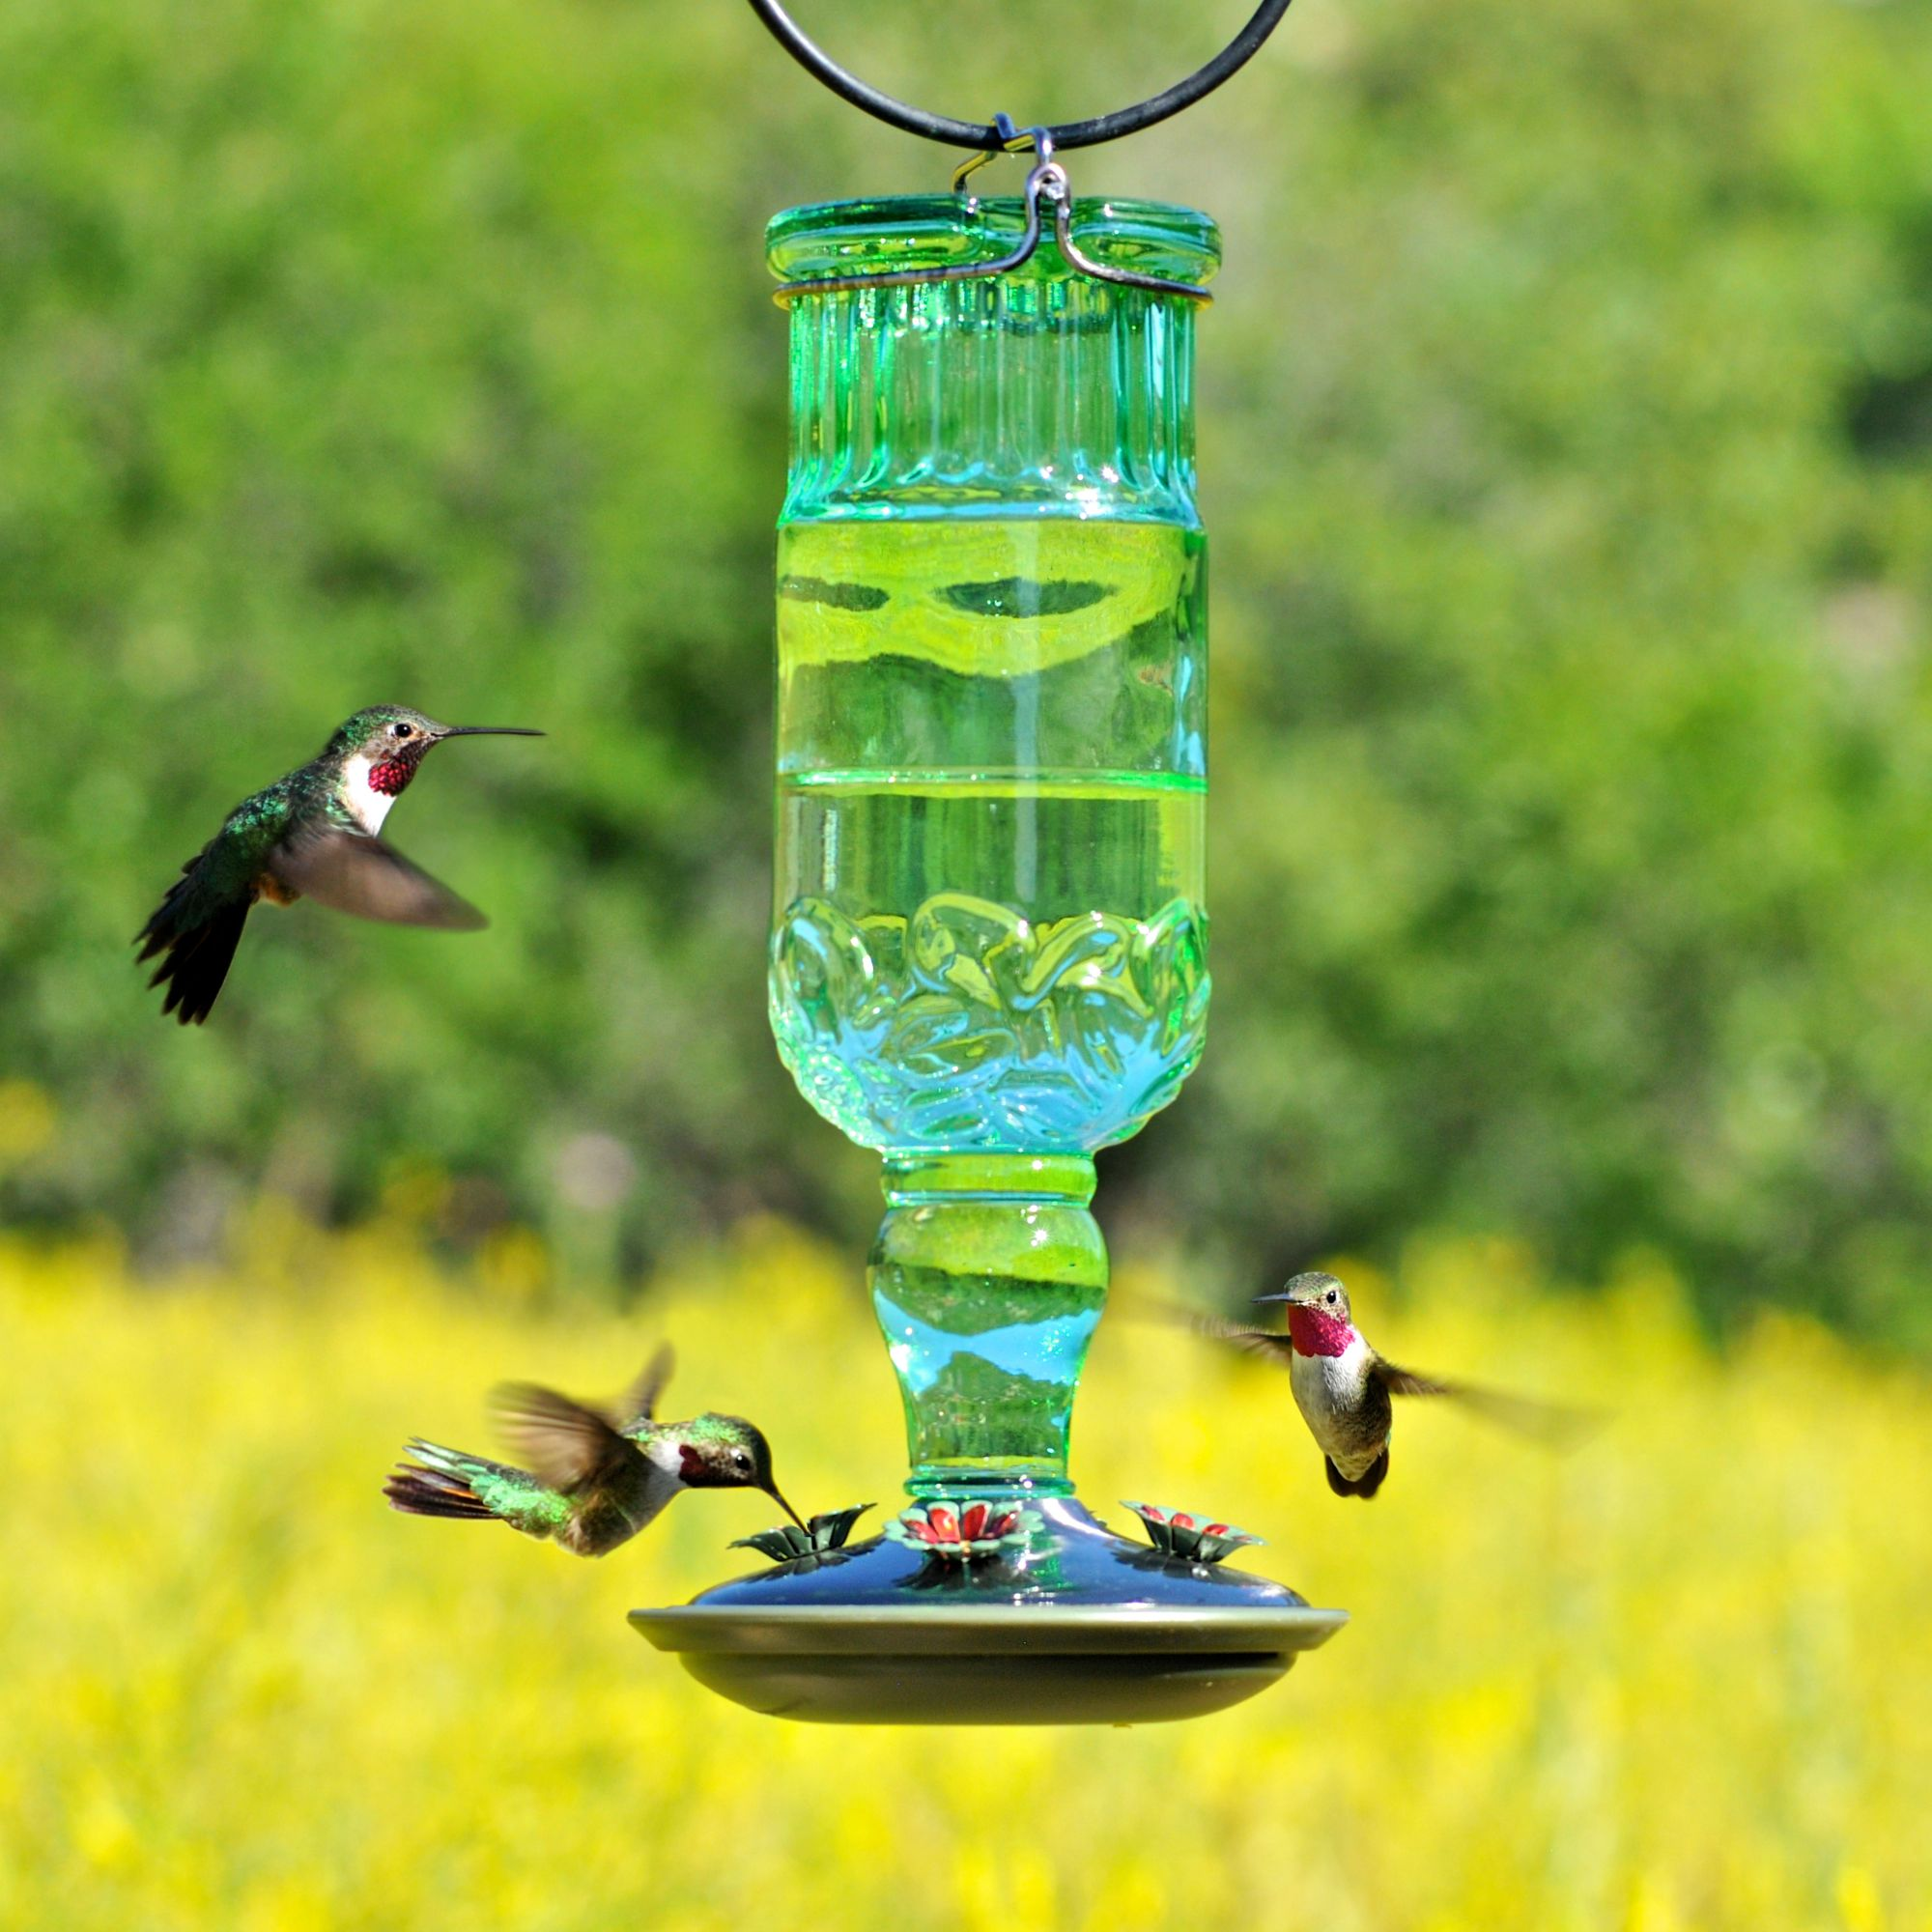 image feeders bird stakes hummingbird wondrous full stake garden decorative sunjoy feeder for